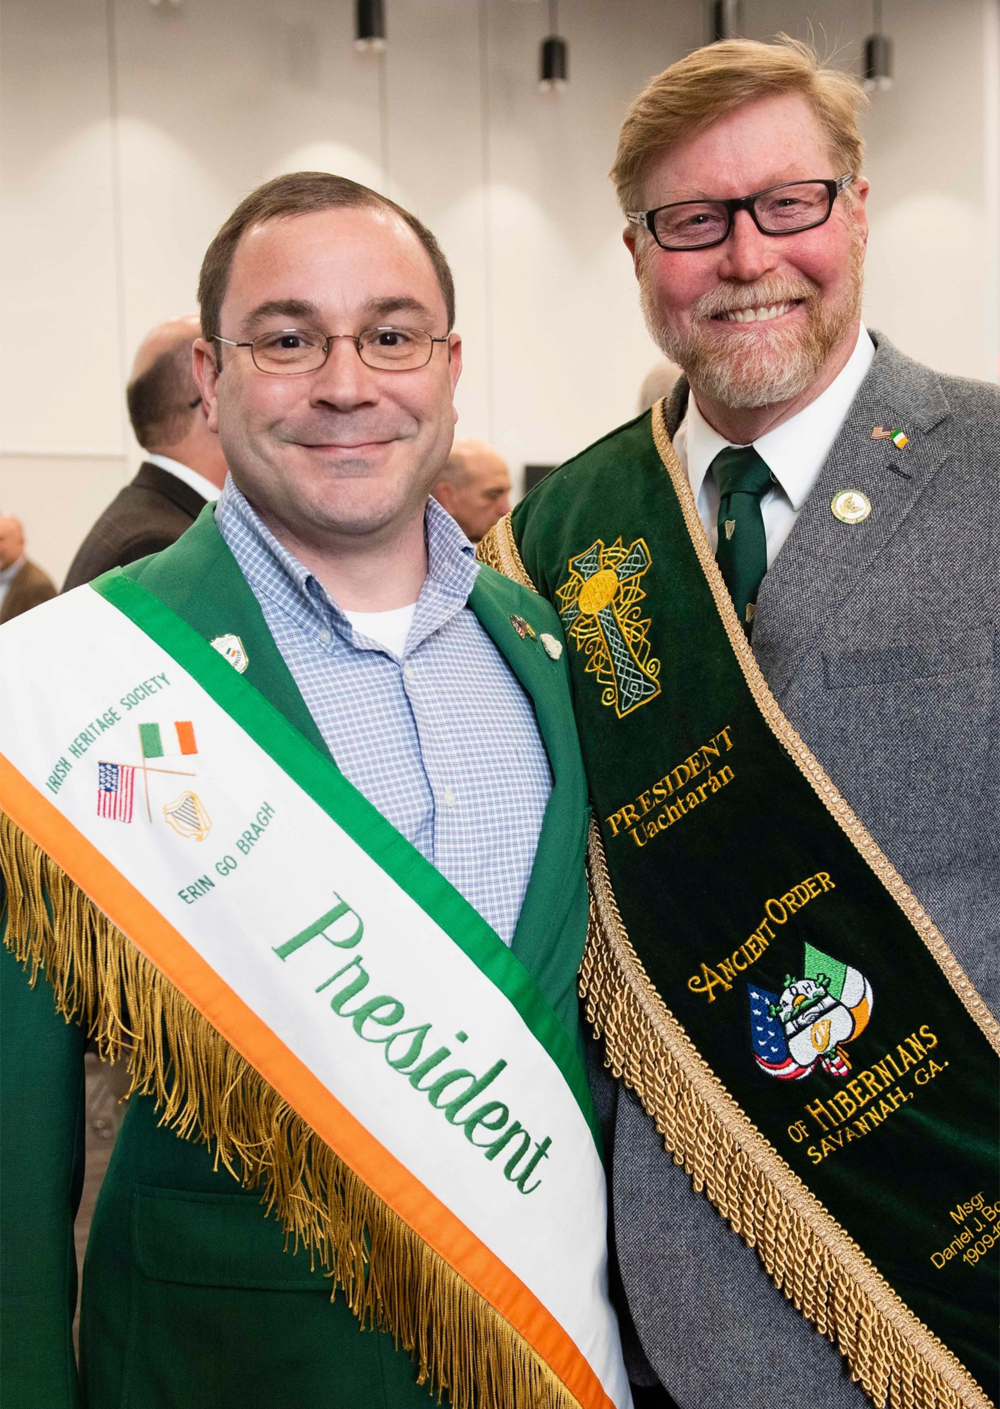 Above:    Robert P. Grayson    (left), President, Irish Heritage Society of Savannah, and    Walt Harper    (right), President, Monsignor Daniel J. Bourke Division (#1 Savannah), Ancient Order of Hibernians in America. Presidents and other officers of each of Savannah's 15 Irish organizations attended the Announcement Event. During the reception, they connected in a spirit of camaraderie. Also in attendance were the President and multiple members of the Irish Heritage Society of Sun City-Hilton Head, a community in the state of South Carolina, just north of Savannah.